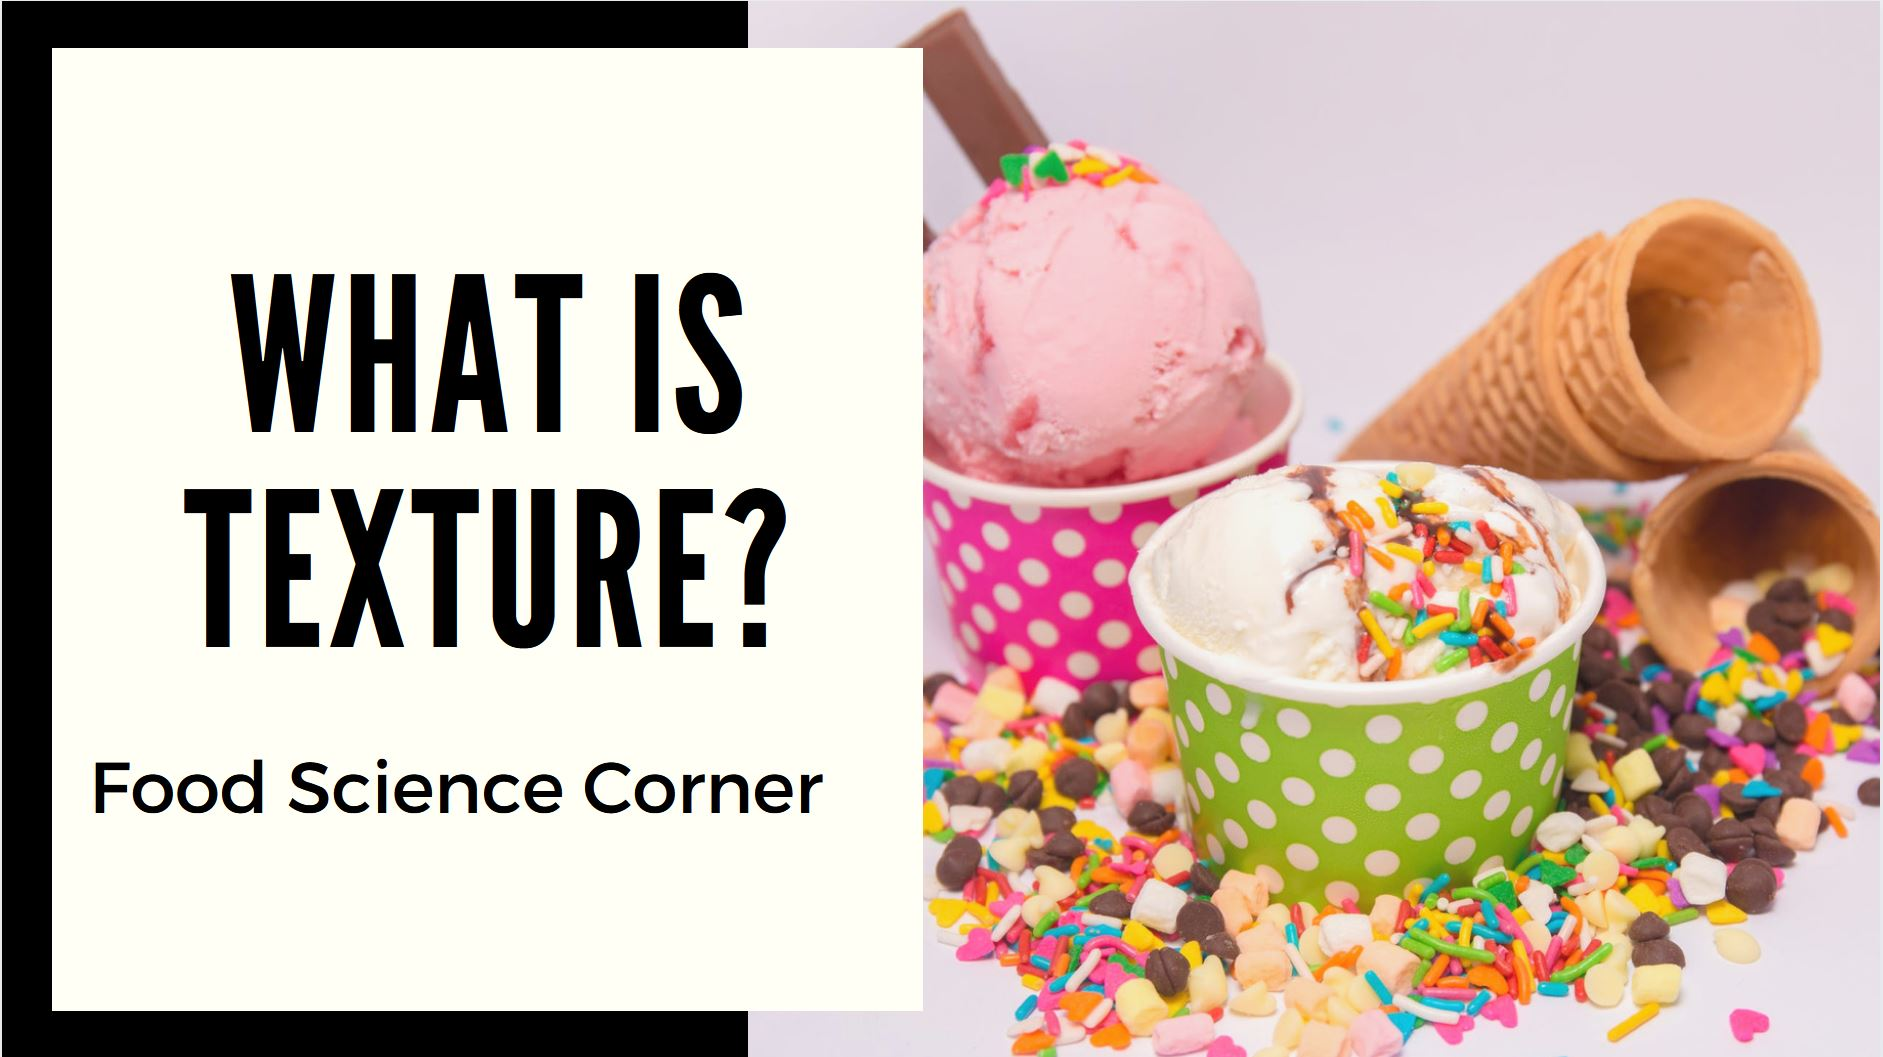 Food Science Corner: What is Texture?